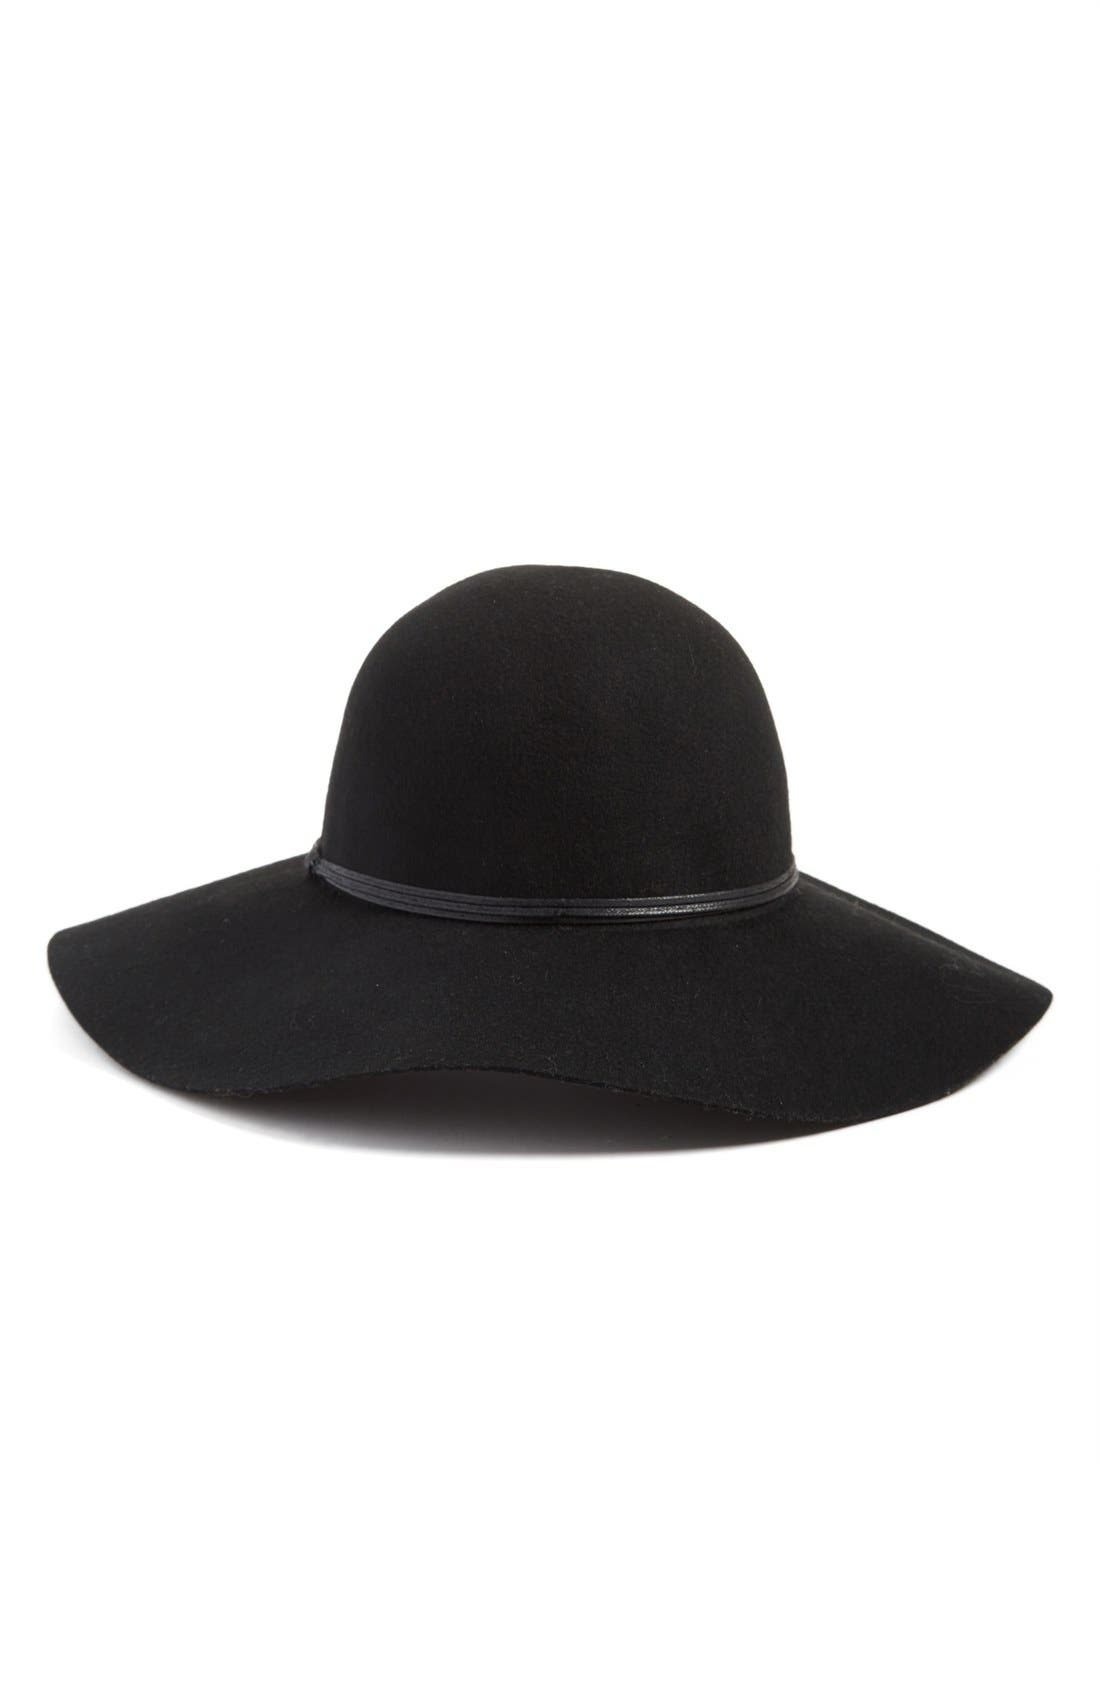 Floppy Wool Hat,                         Main,                         color,